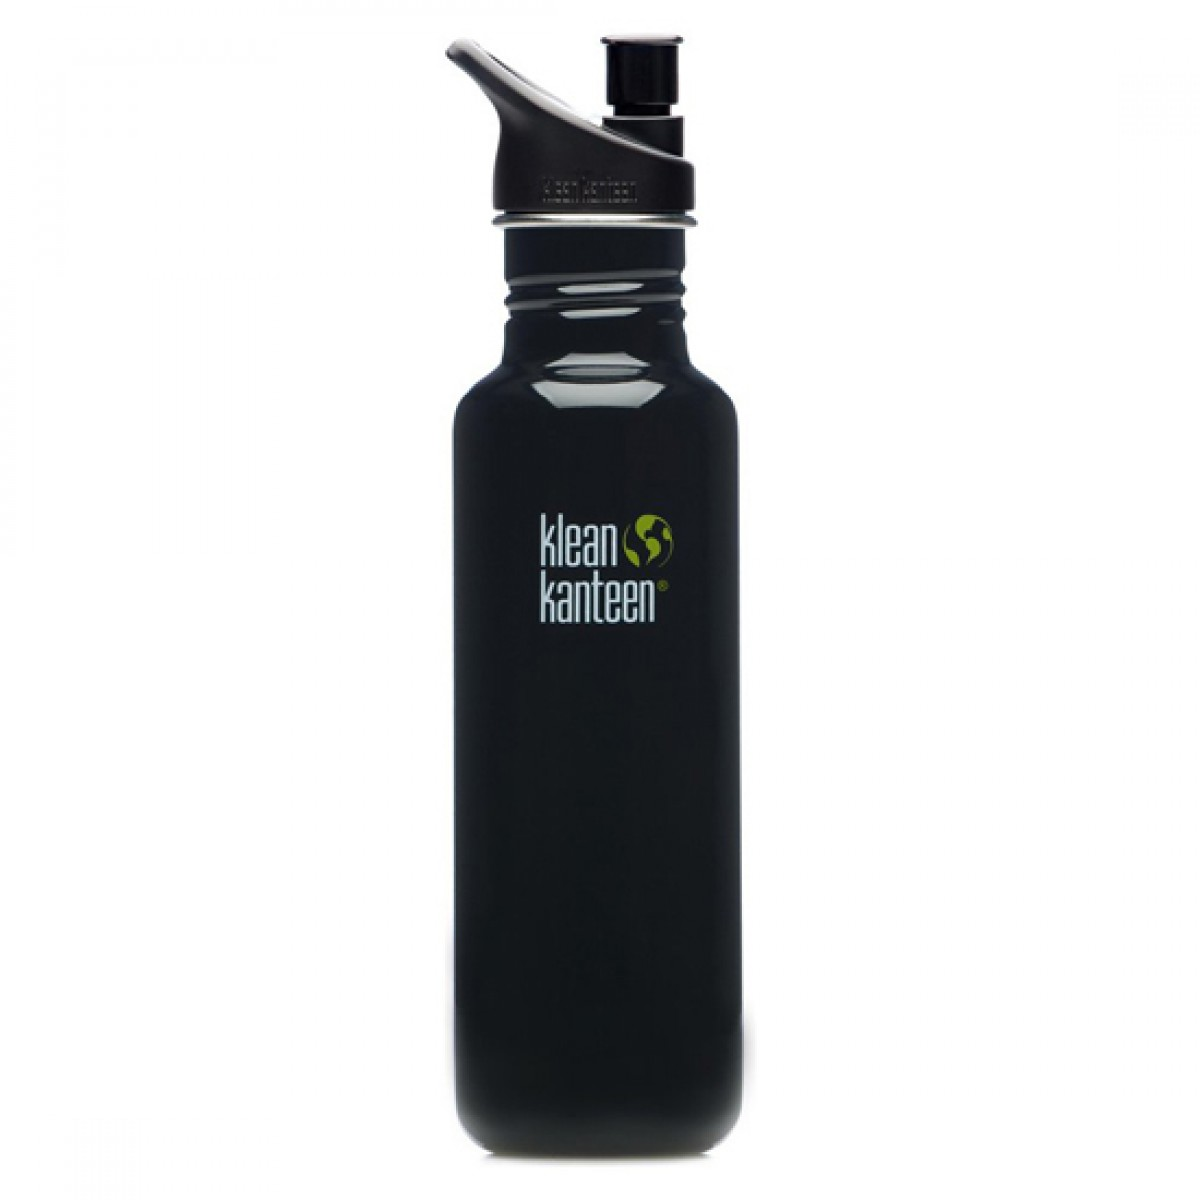 K27pps Be Klean Kanteen 27 Ounce Stainless Steel Water